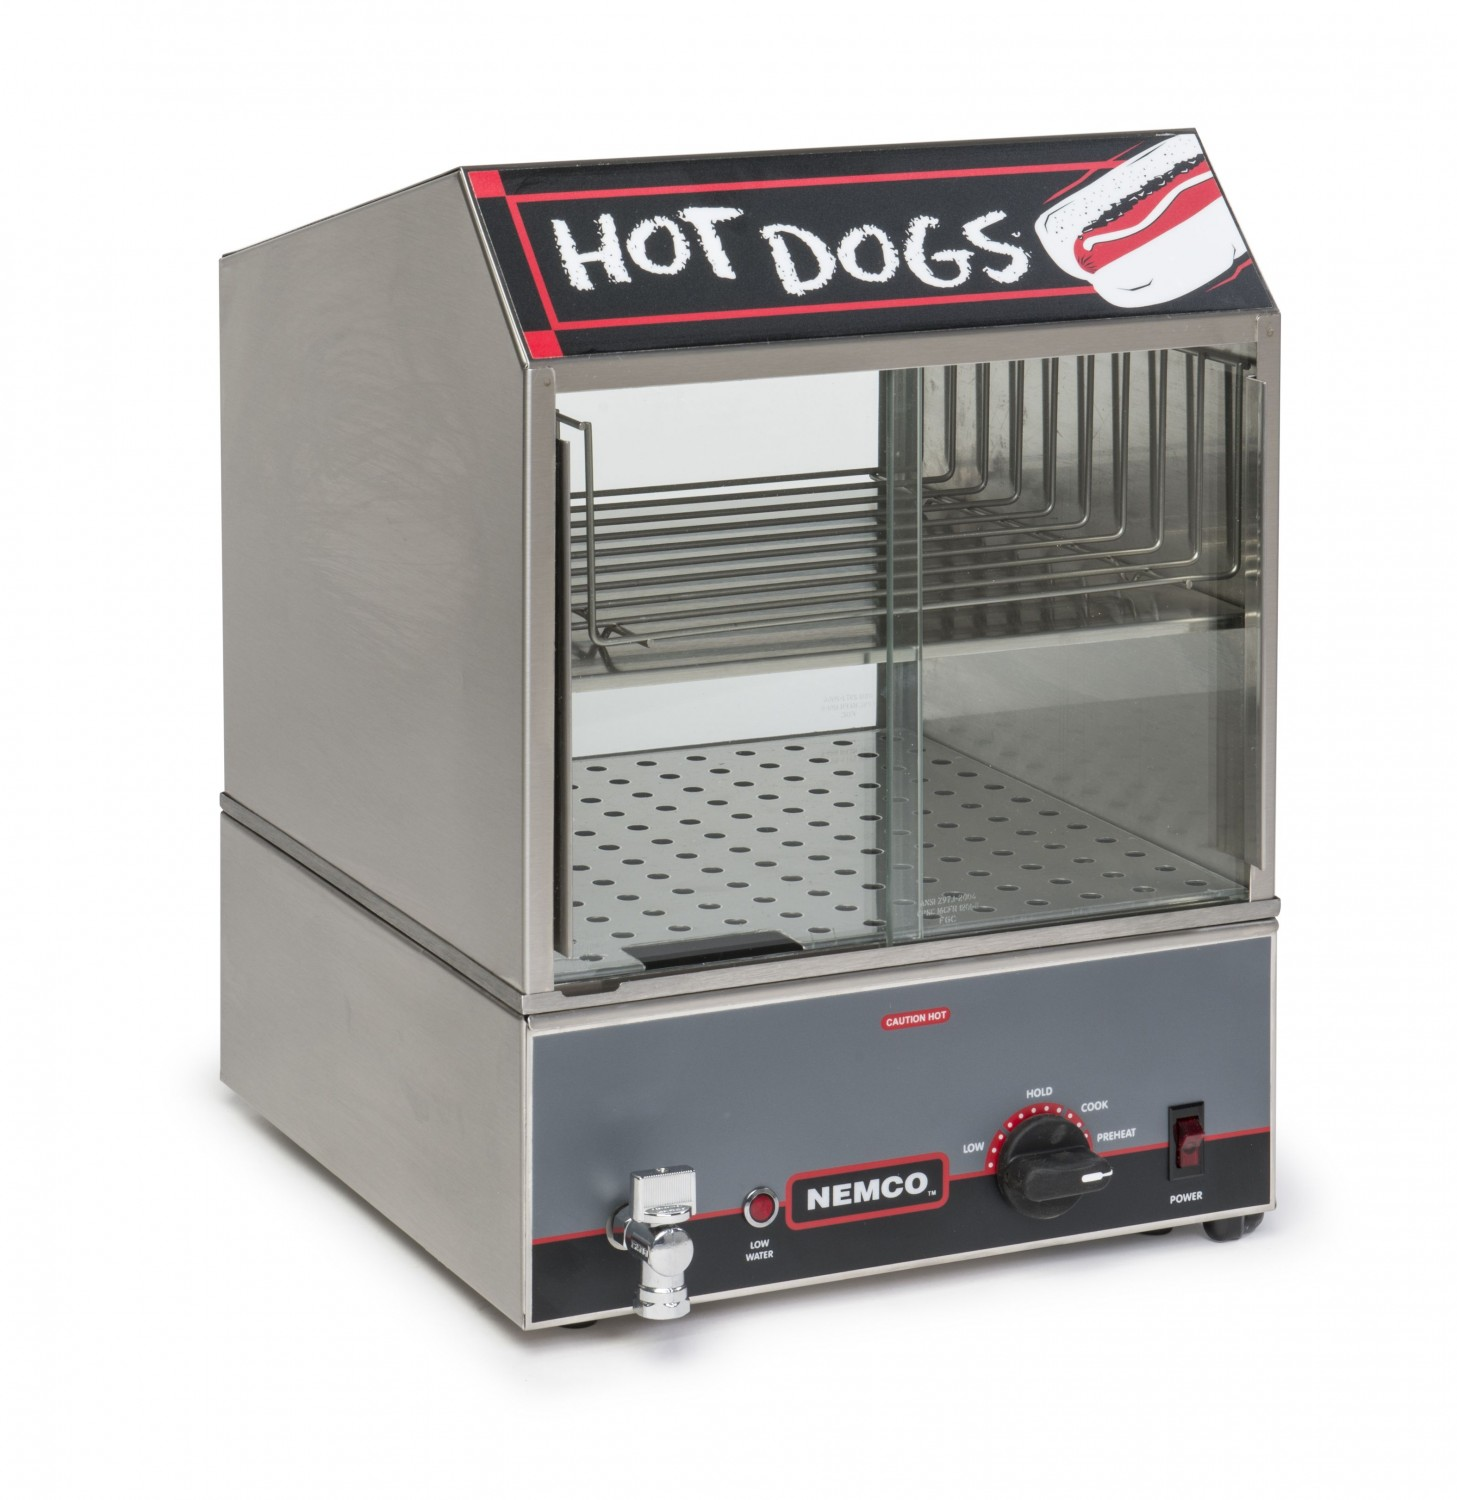 Nemco 8300 Roll-A-Grill Countertop Hot Dog Steamer